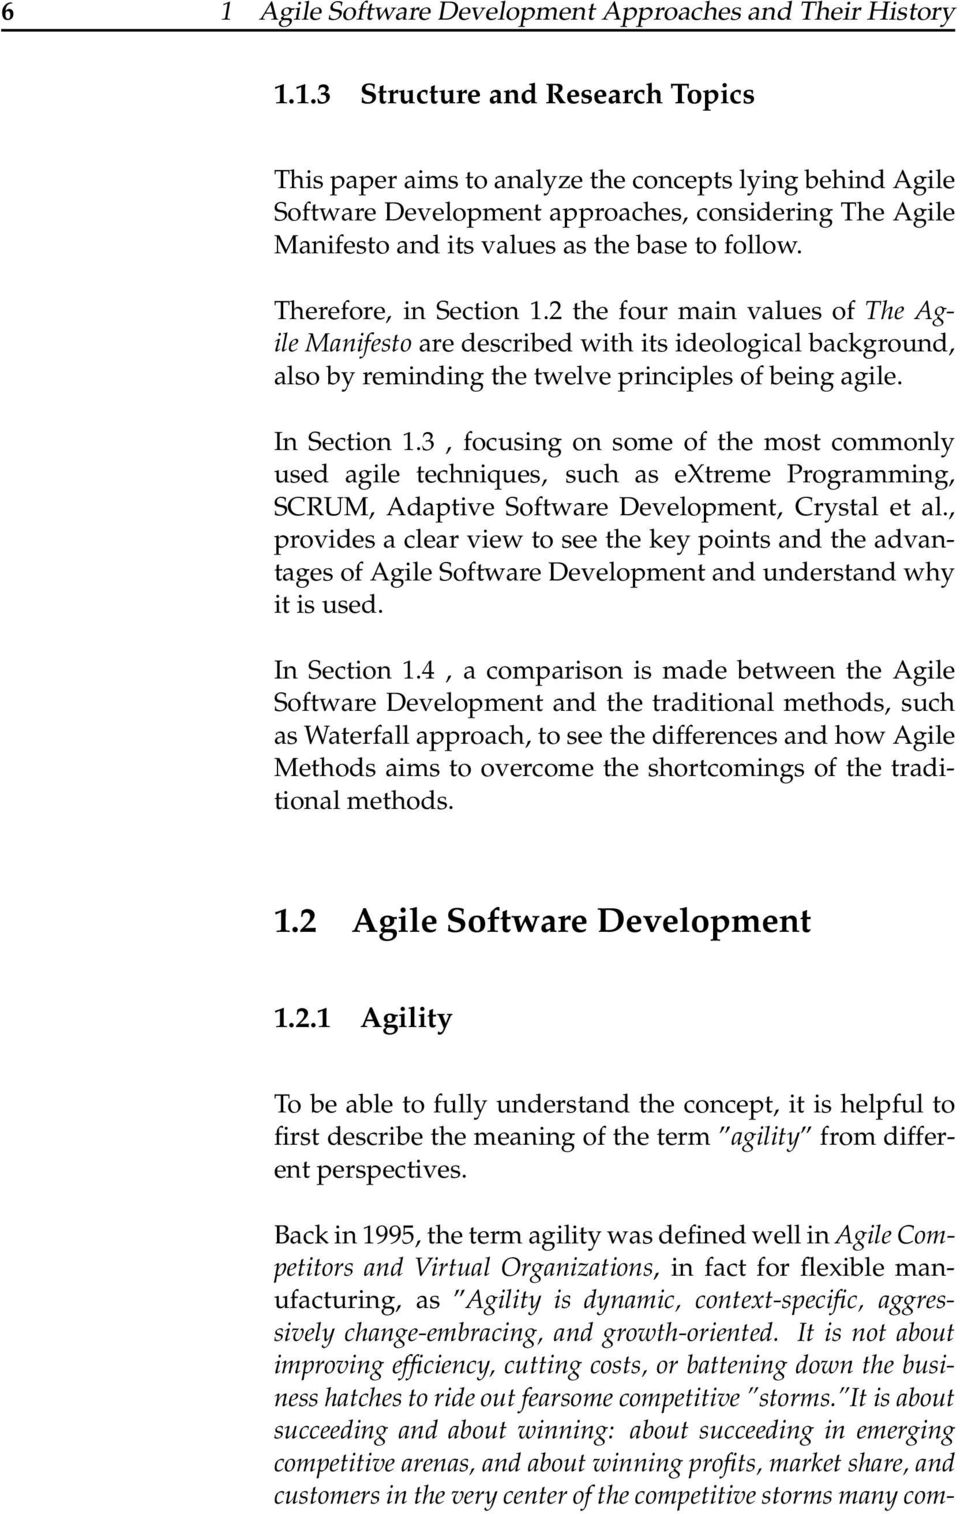 3, focusing on some of the most commonly used agile techniques, such as extreme Programming, SCRUM, Adaptive Software Development, Crystal et al.